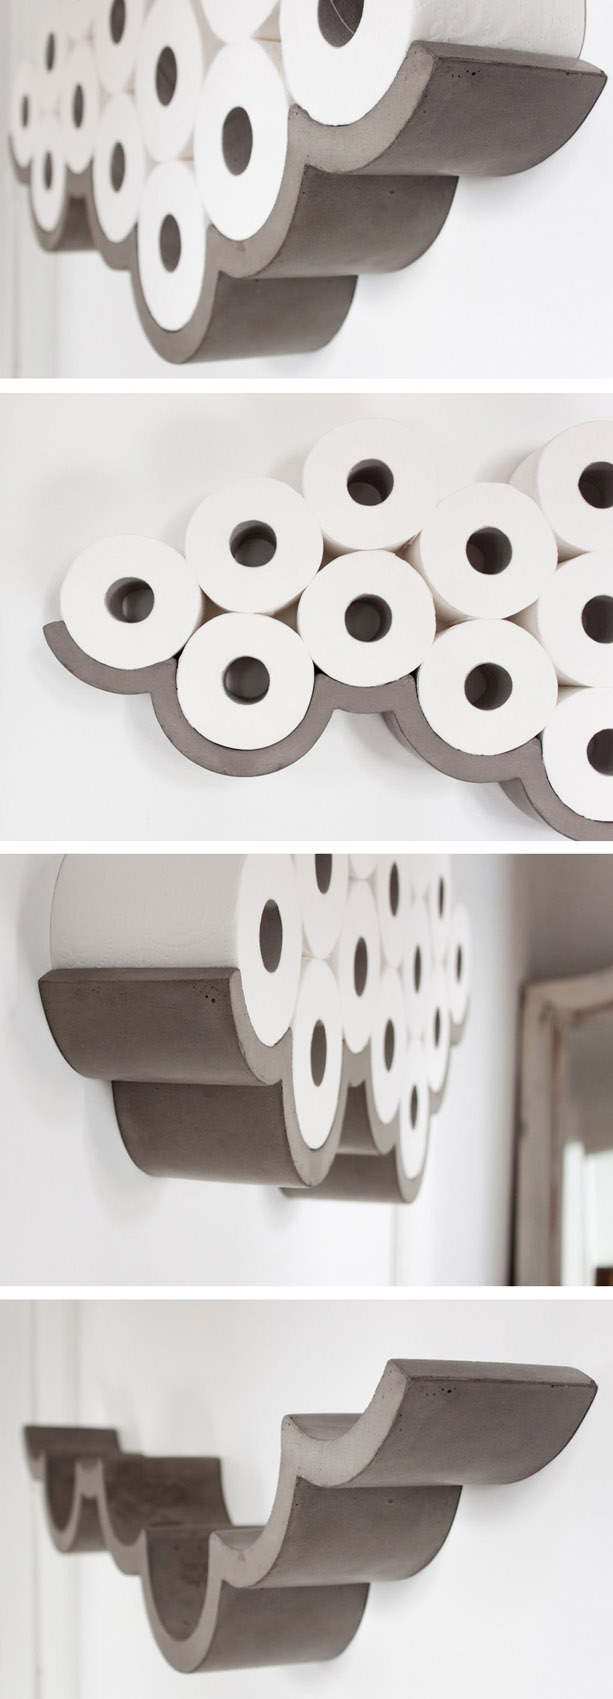 Cloud Concrete Toilet Roll Holder